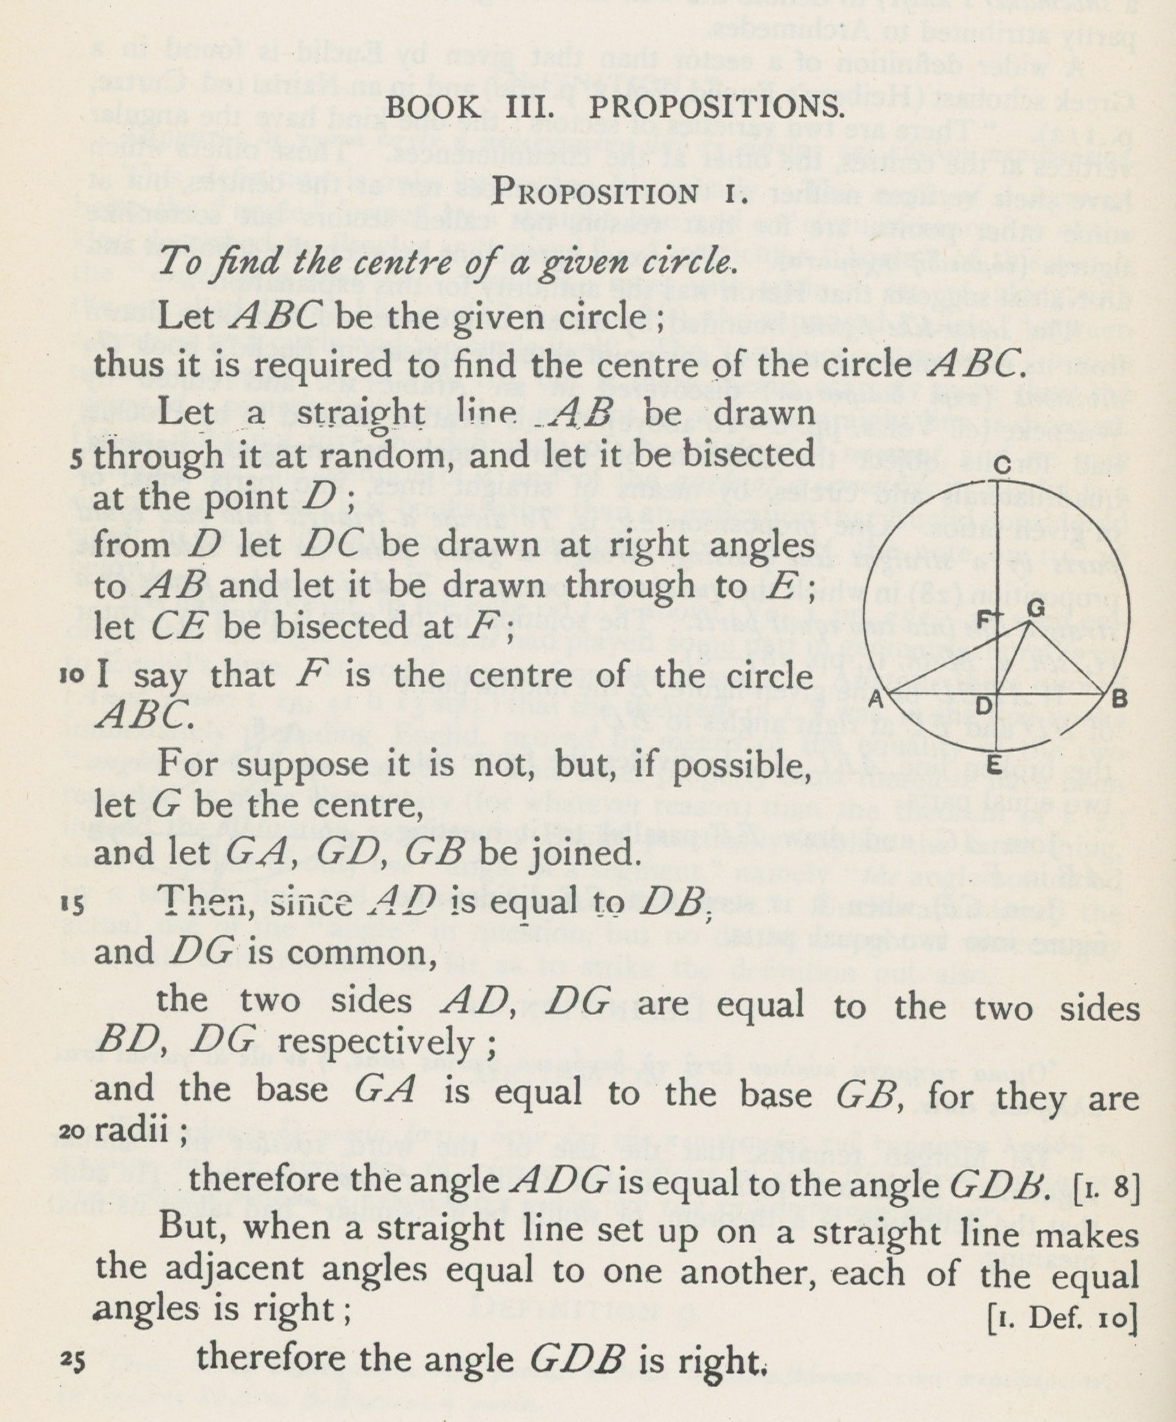 """Proposition iii.1 from Sir Thomas Heath's translation (1908) showing the same diagram as was used in the D'Orville manuscript 1,020 years earlier"""